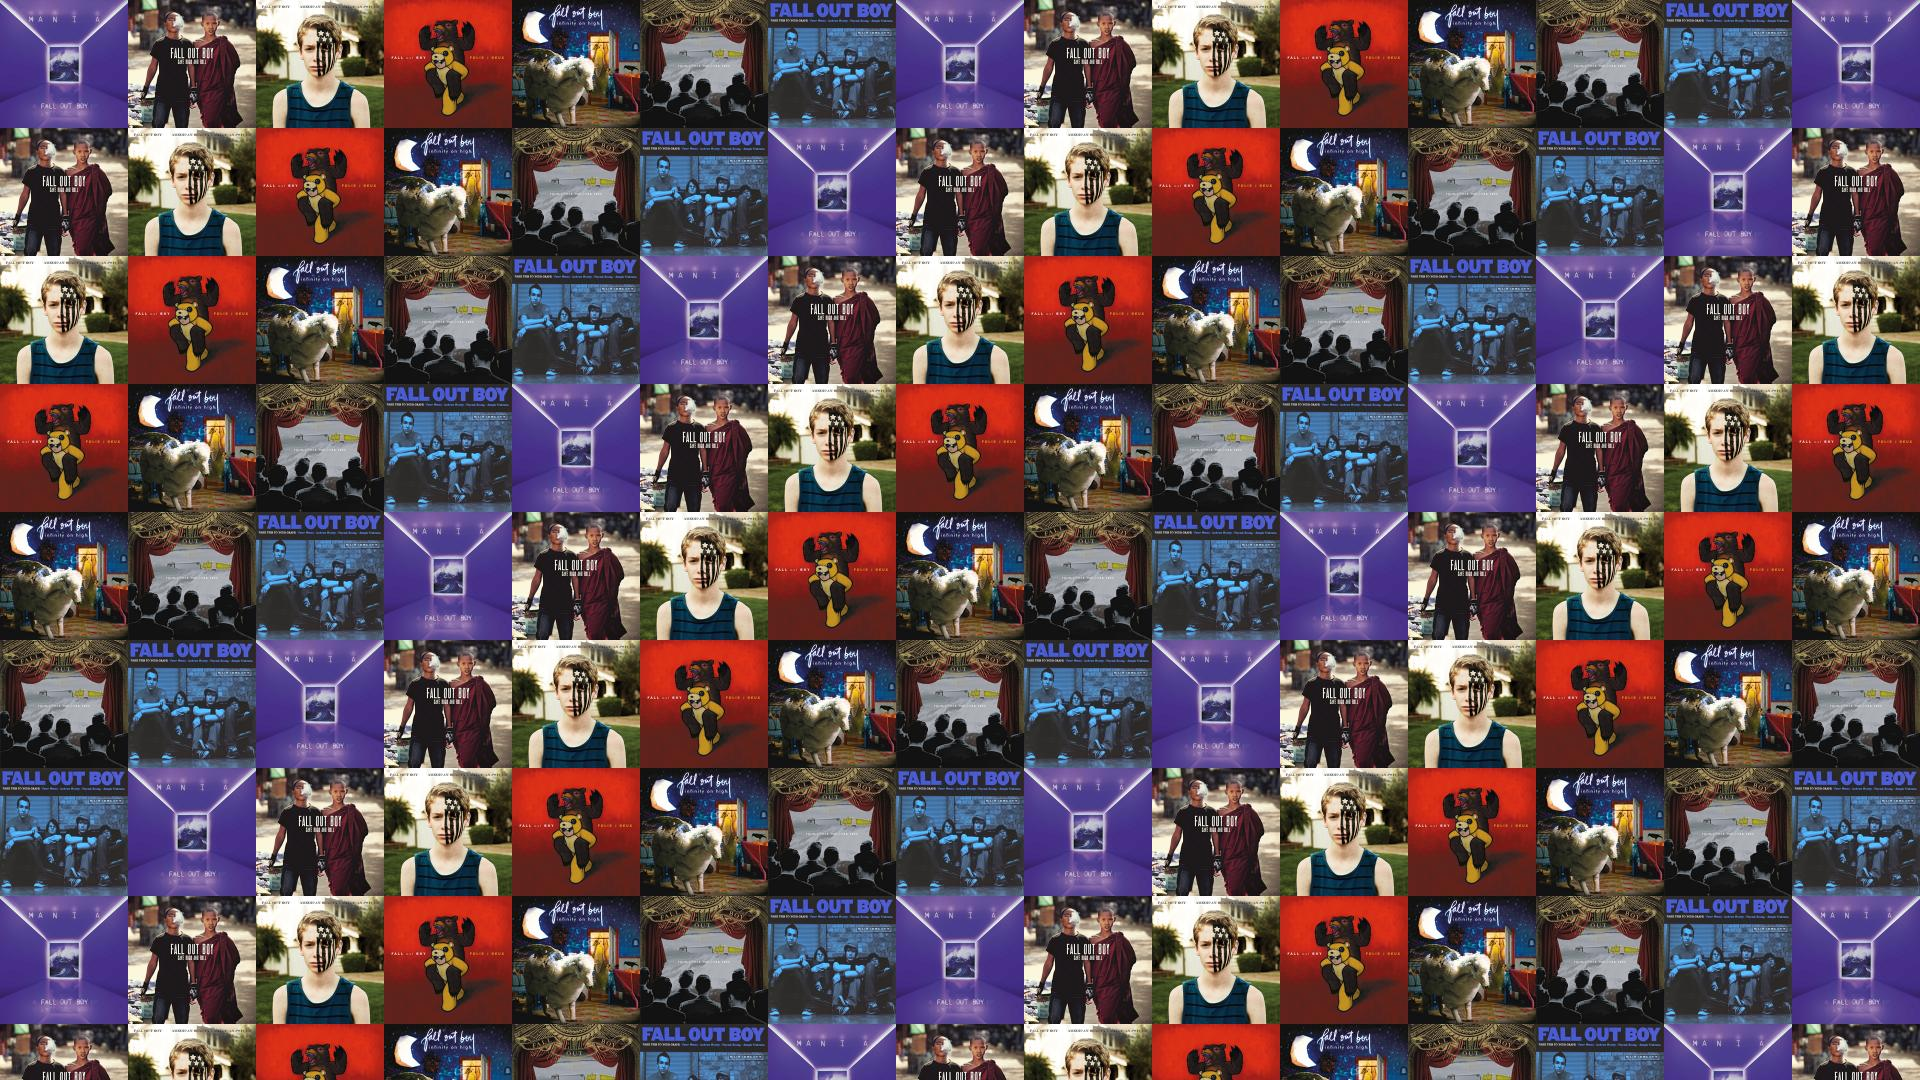 Download This Free Wallpaper With Images Of Fall Out Boy Mania Save Rock And Roll American Beauty Folie